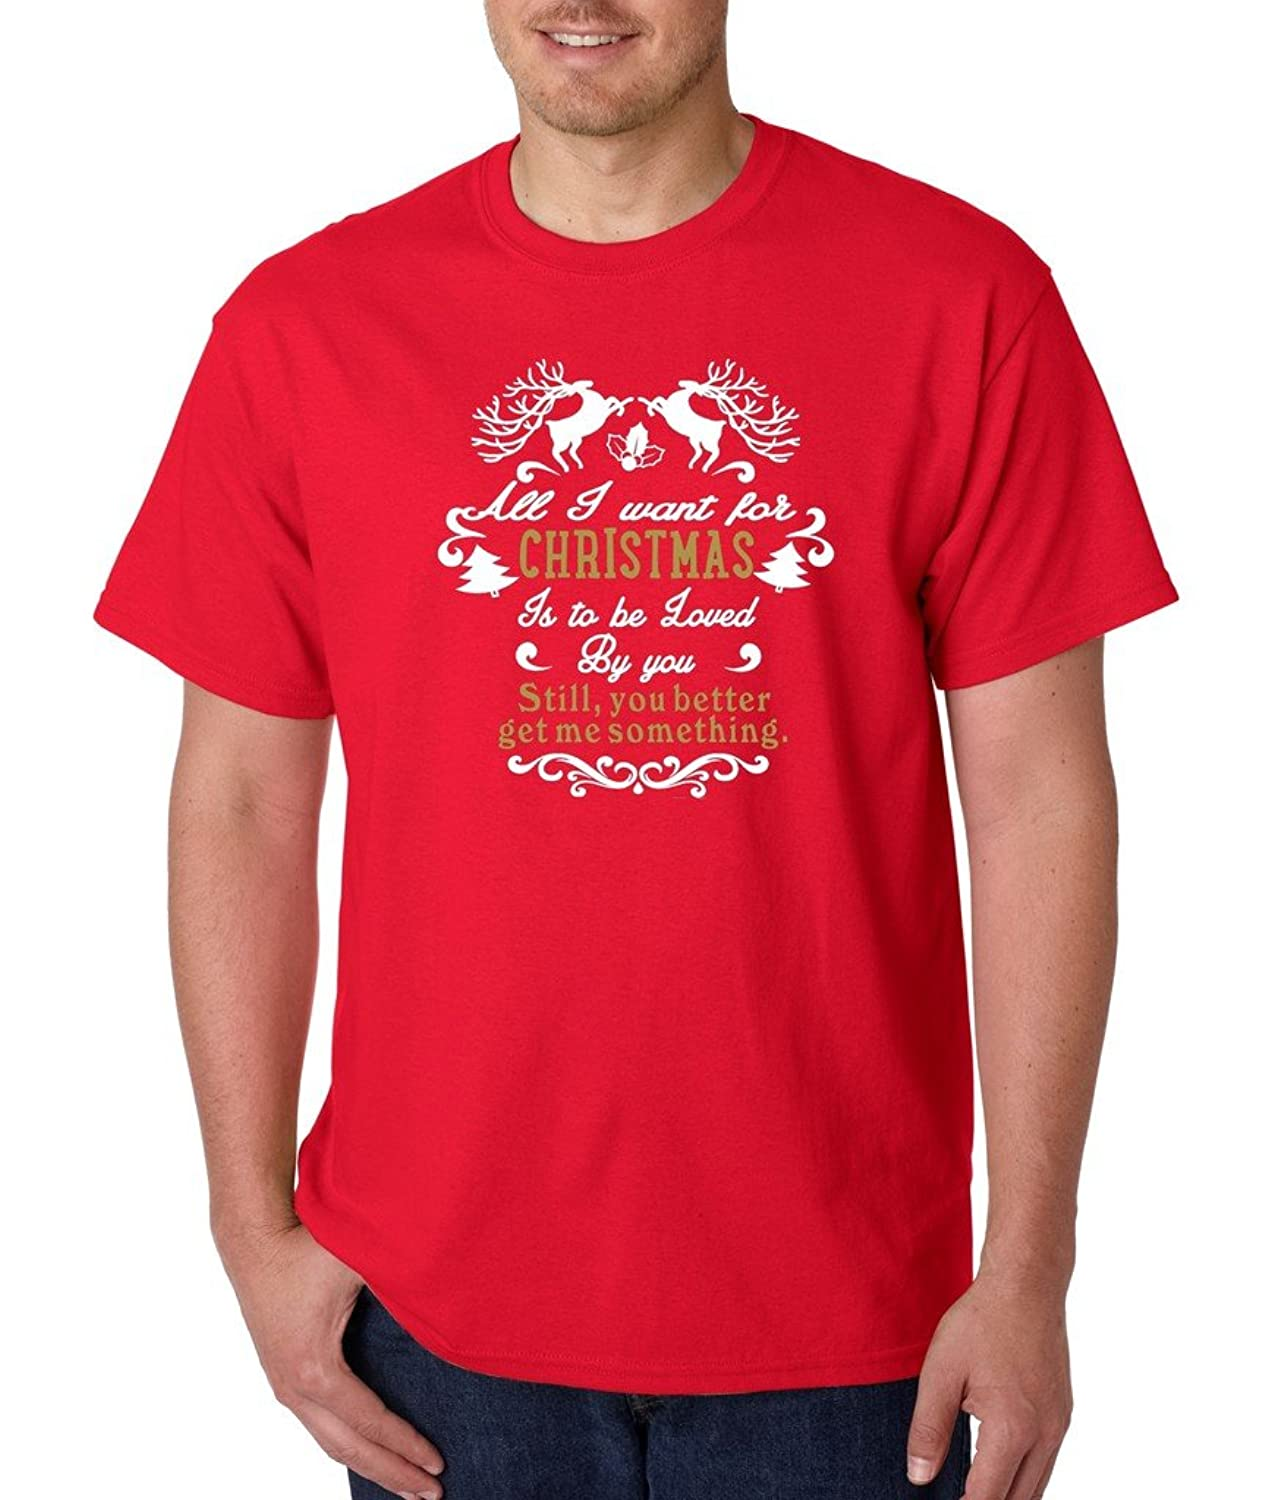 All I Want From Christmas is T-shirt Christmas Funny Xmas Gift Shirts